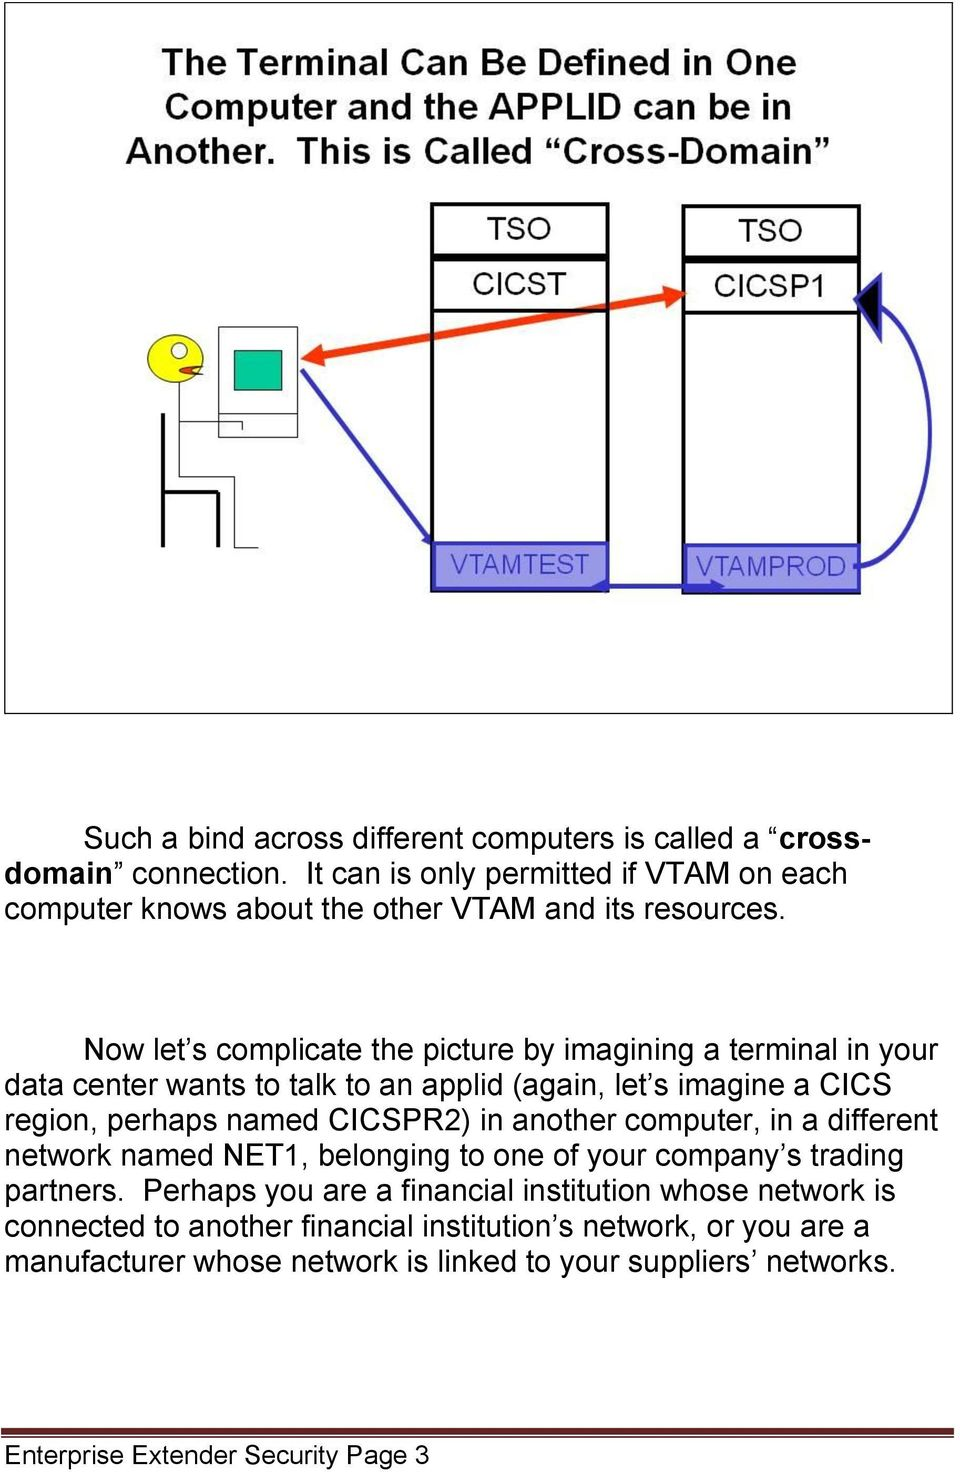 Now let s complicate the picture by imagining a terminal in your data center wants to talk to an applid (again, let s imagine a CICS region, perhaps named CICSPR2) in